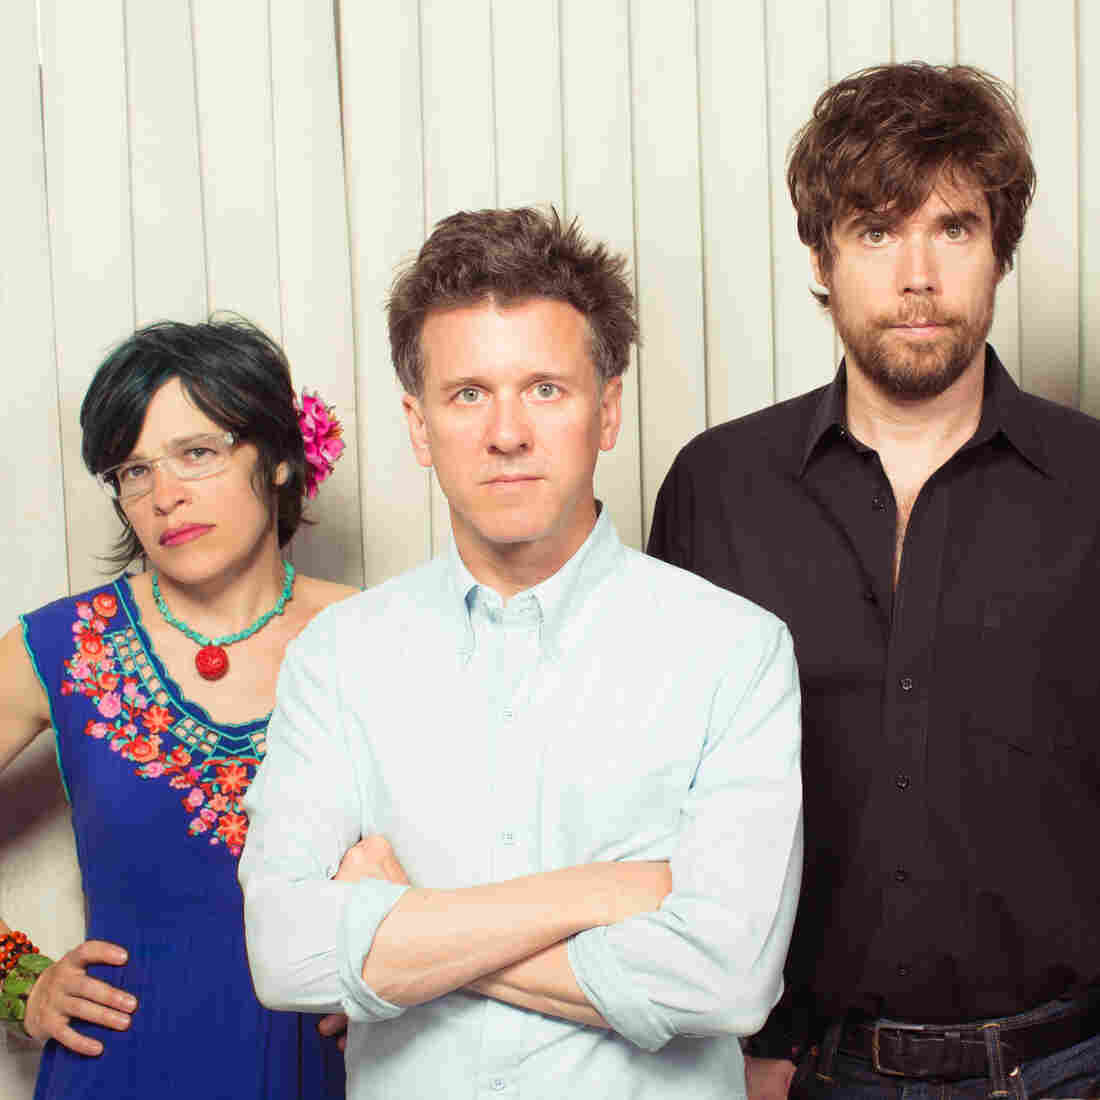 Superchunk bandmates Laura Ballance (left) and Mac McCaughan (second from left) founded Merge Records in 1989.